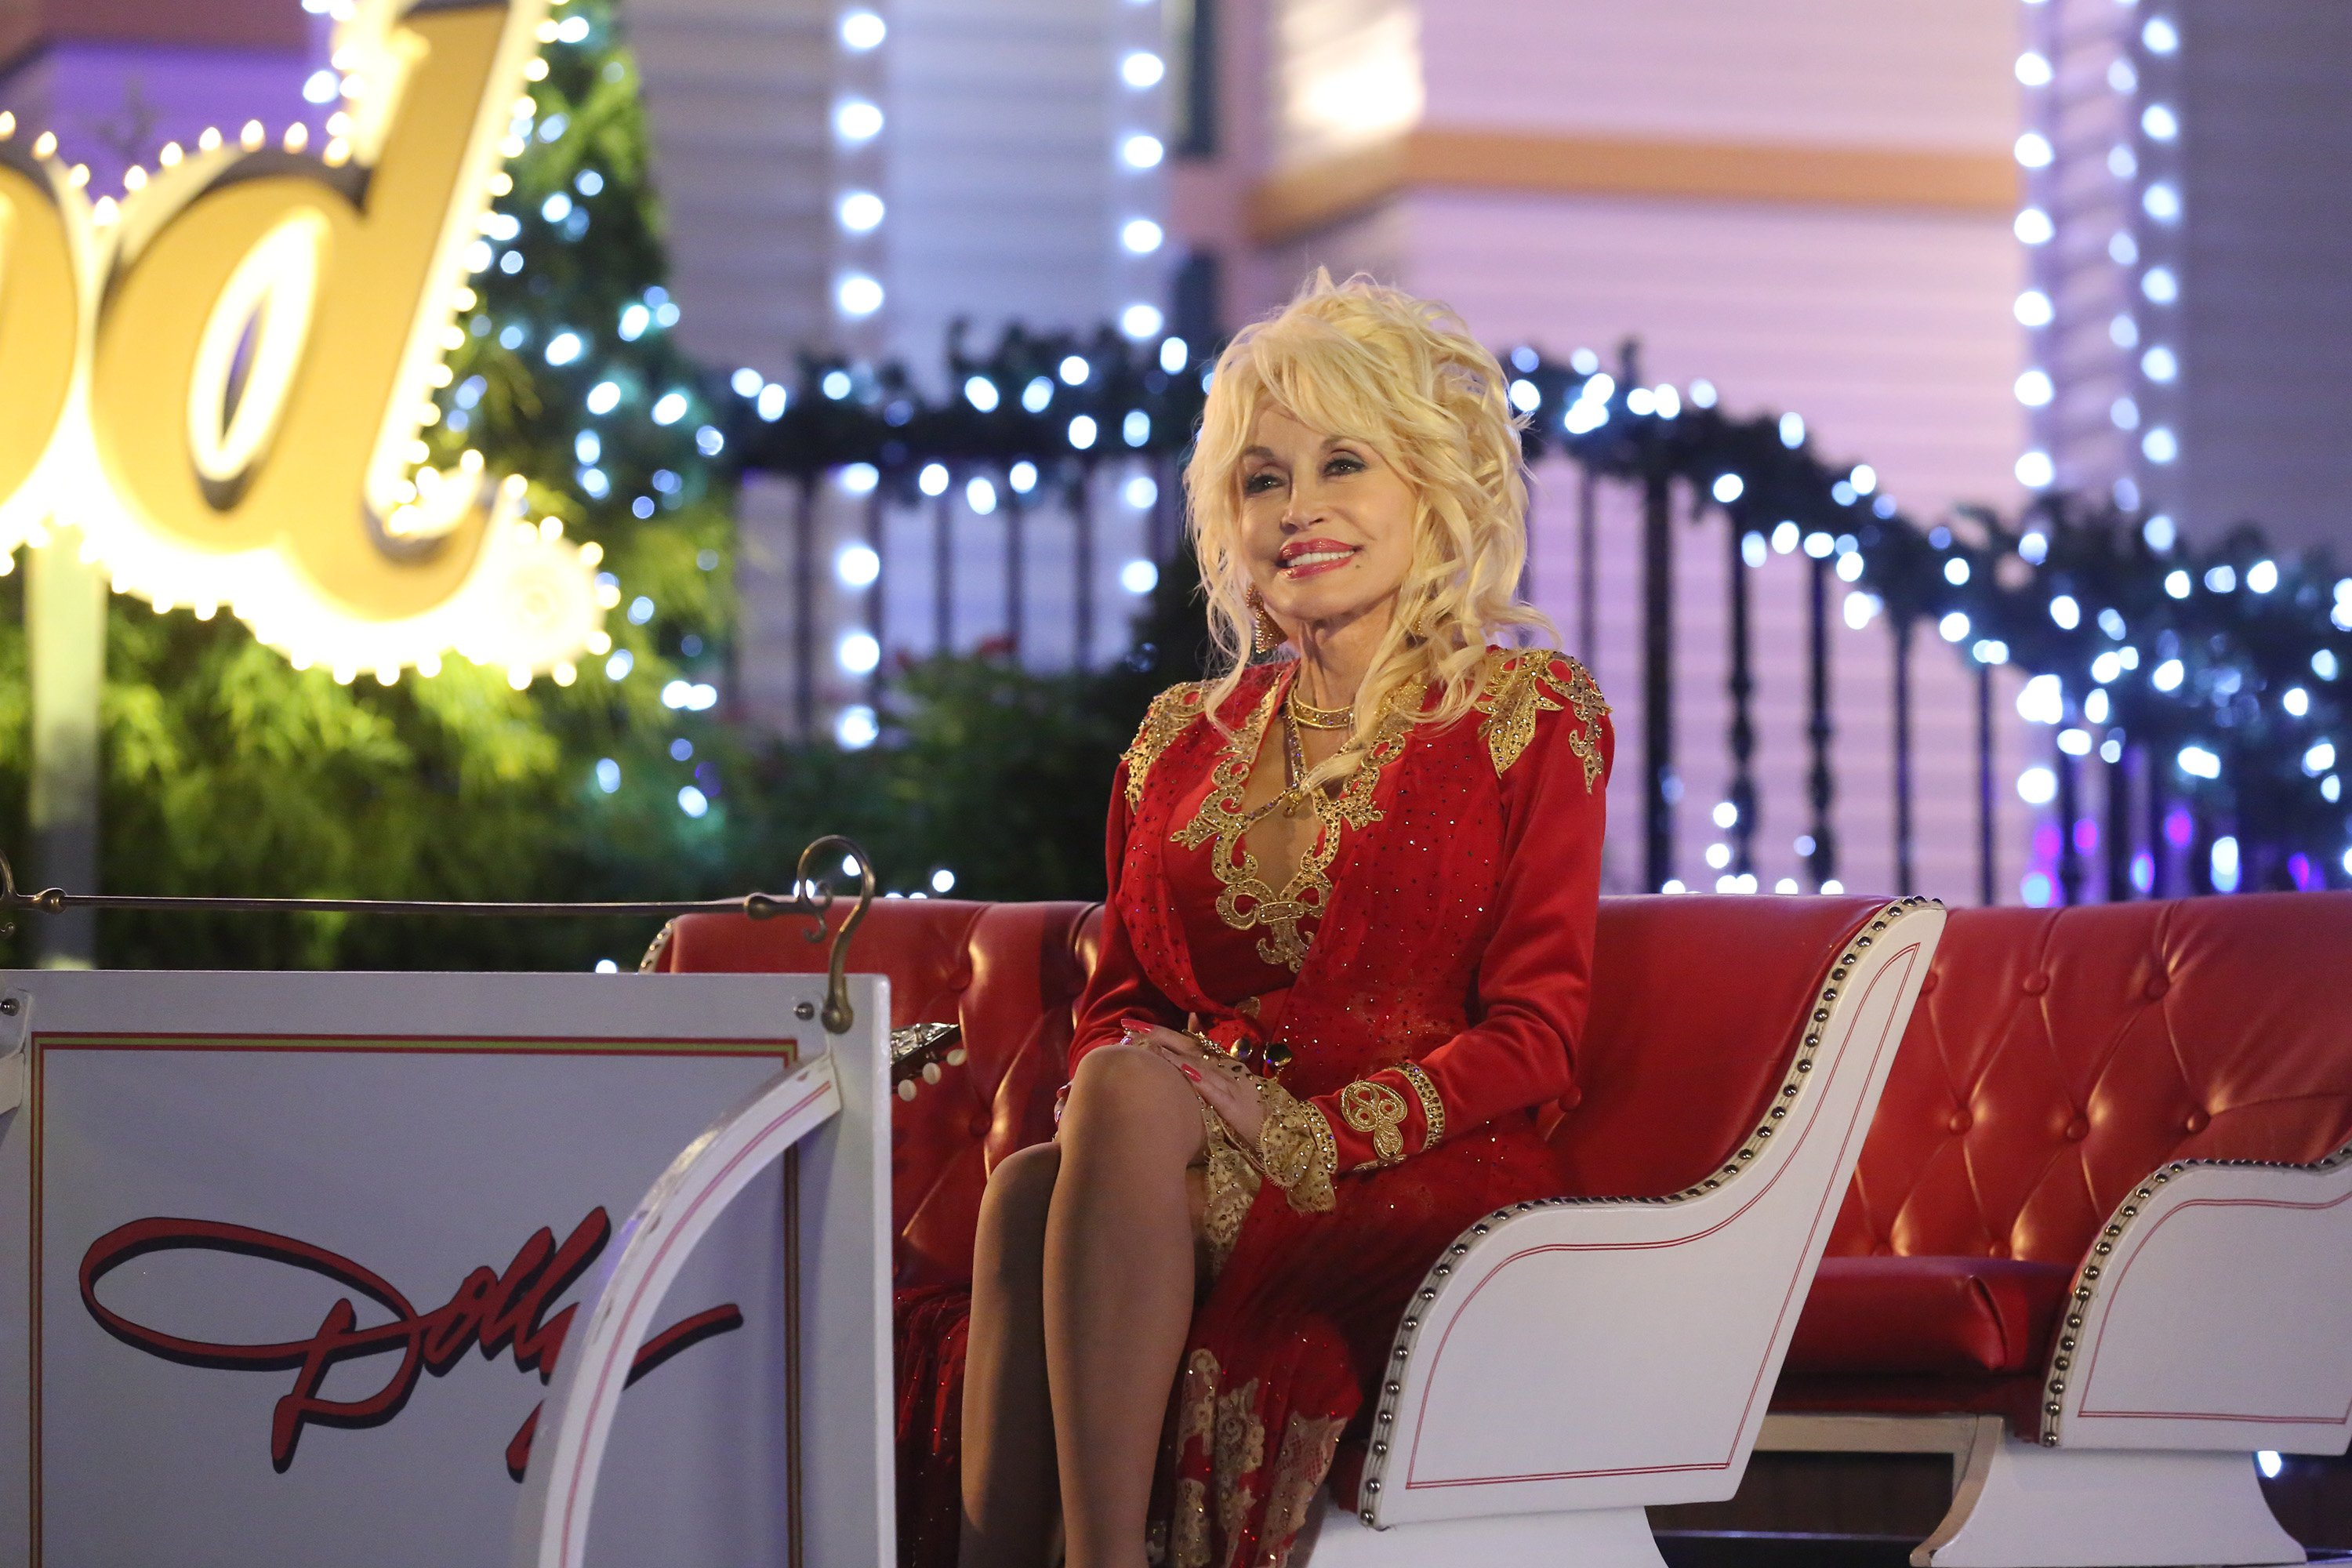 Dolly Parton's Coat of Many Colors - Staffel 1, 2015. | Quelle: Getty Images